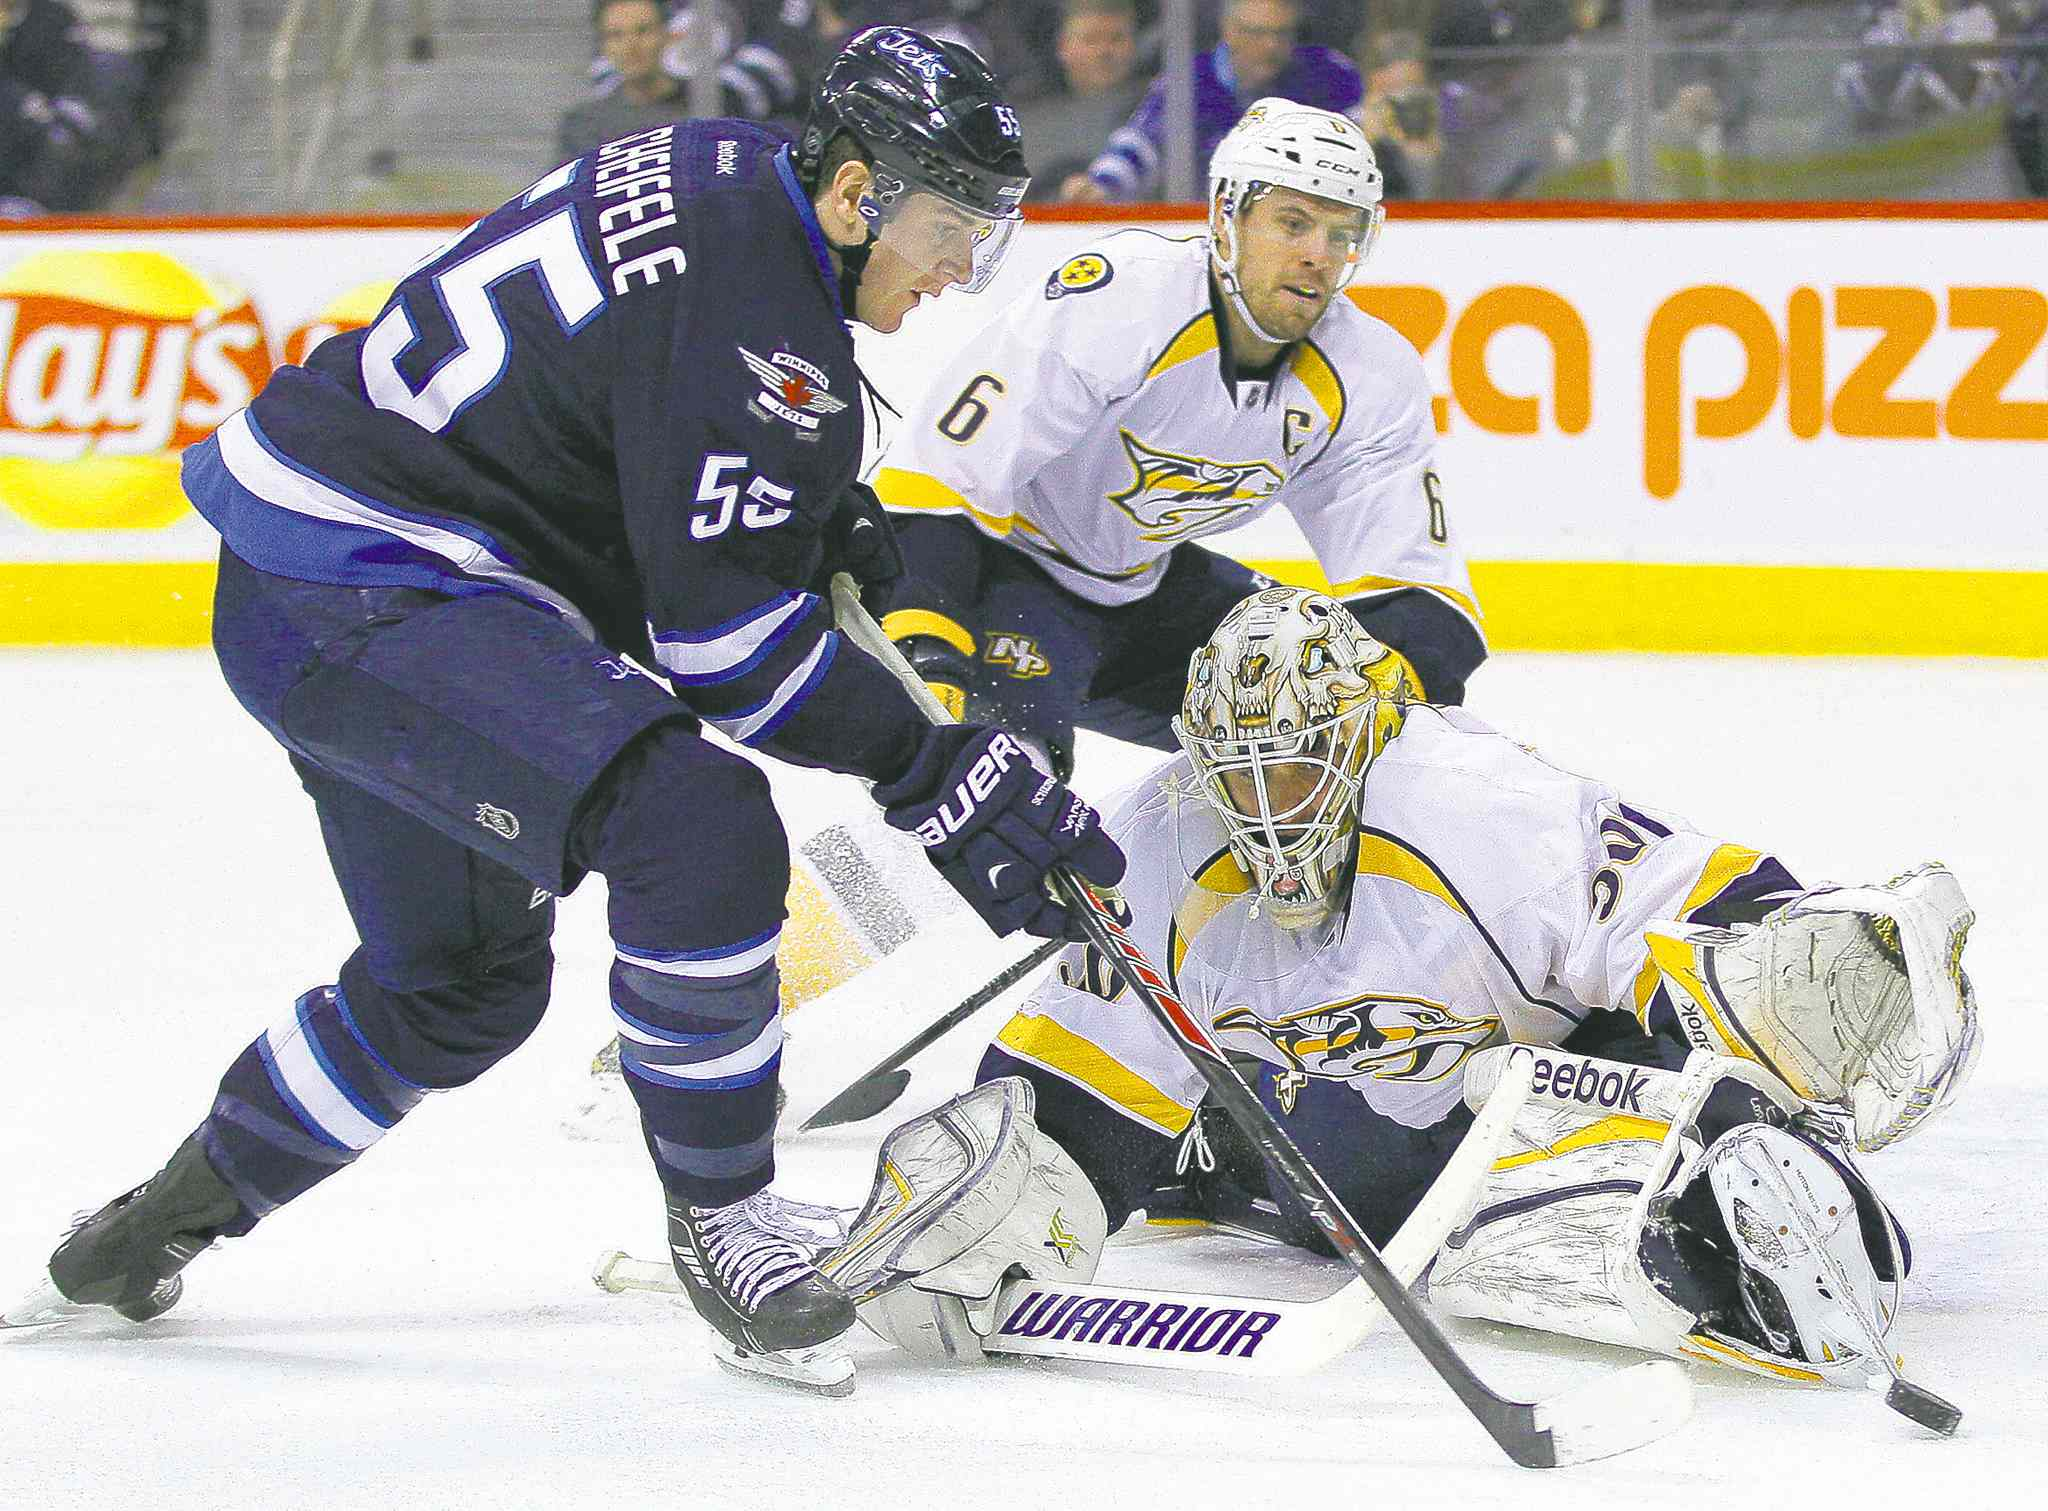 Jets' Mark Scheifele gets around Predators goaltender Carter Hutton before shooting the puck off Shea Weber for a goal.